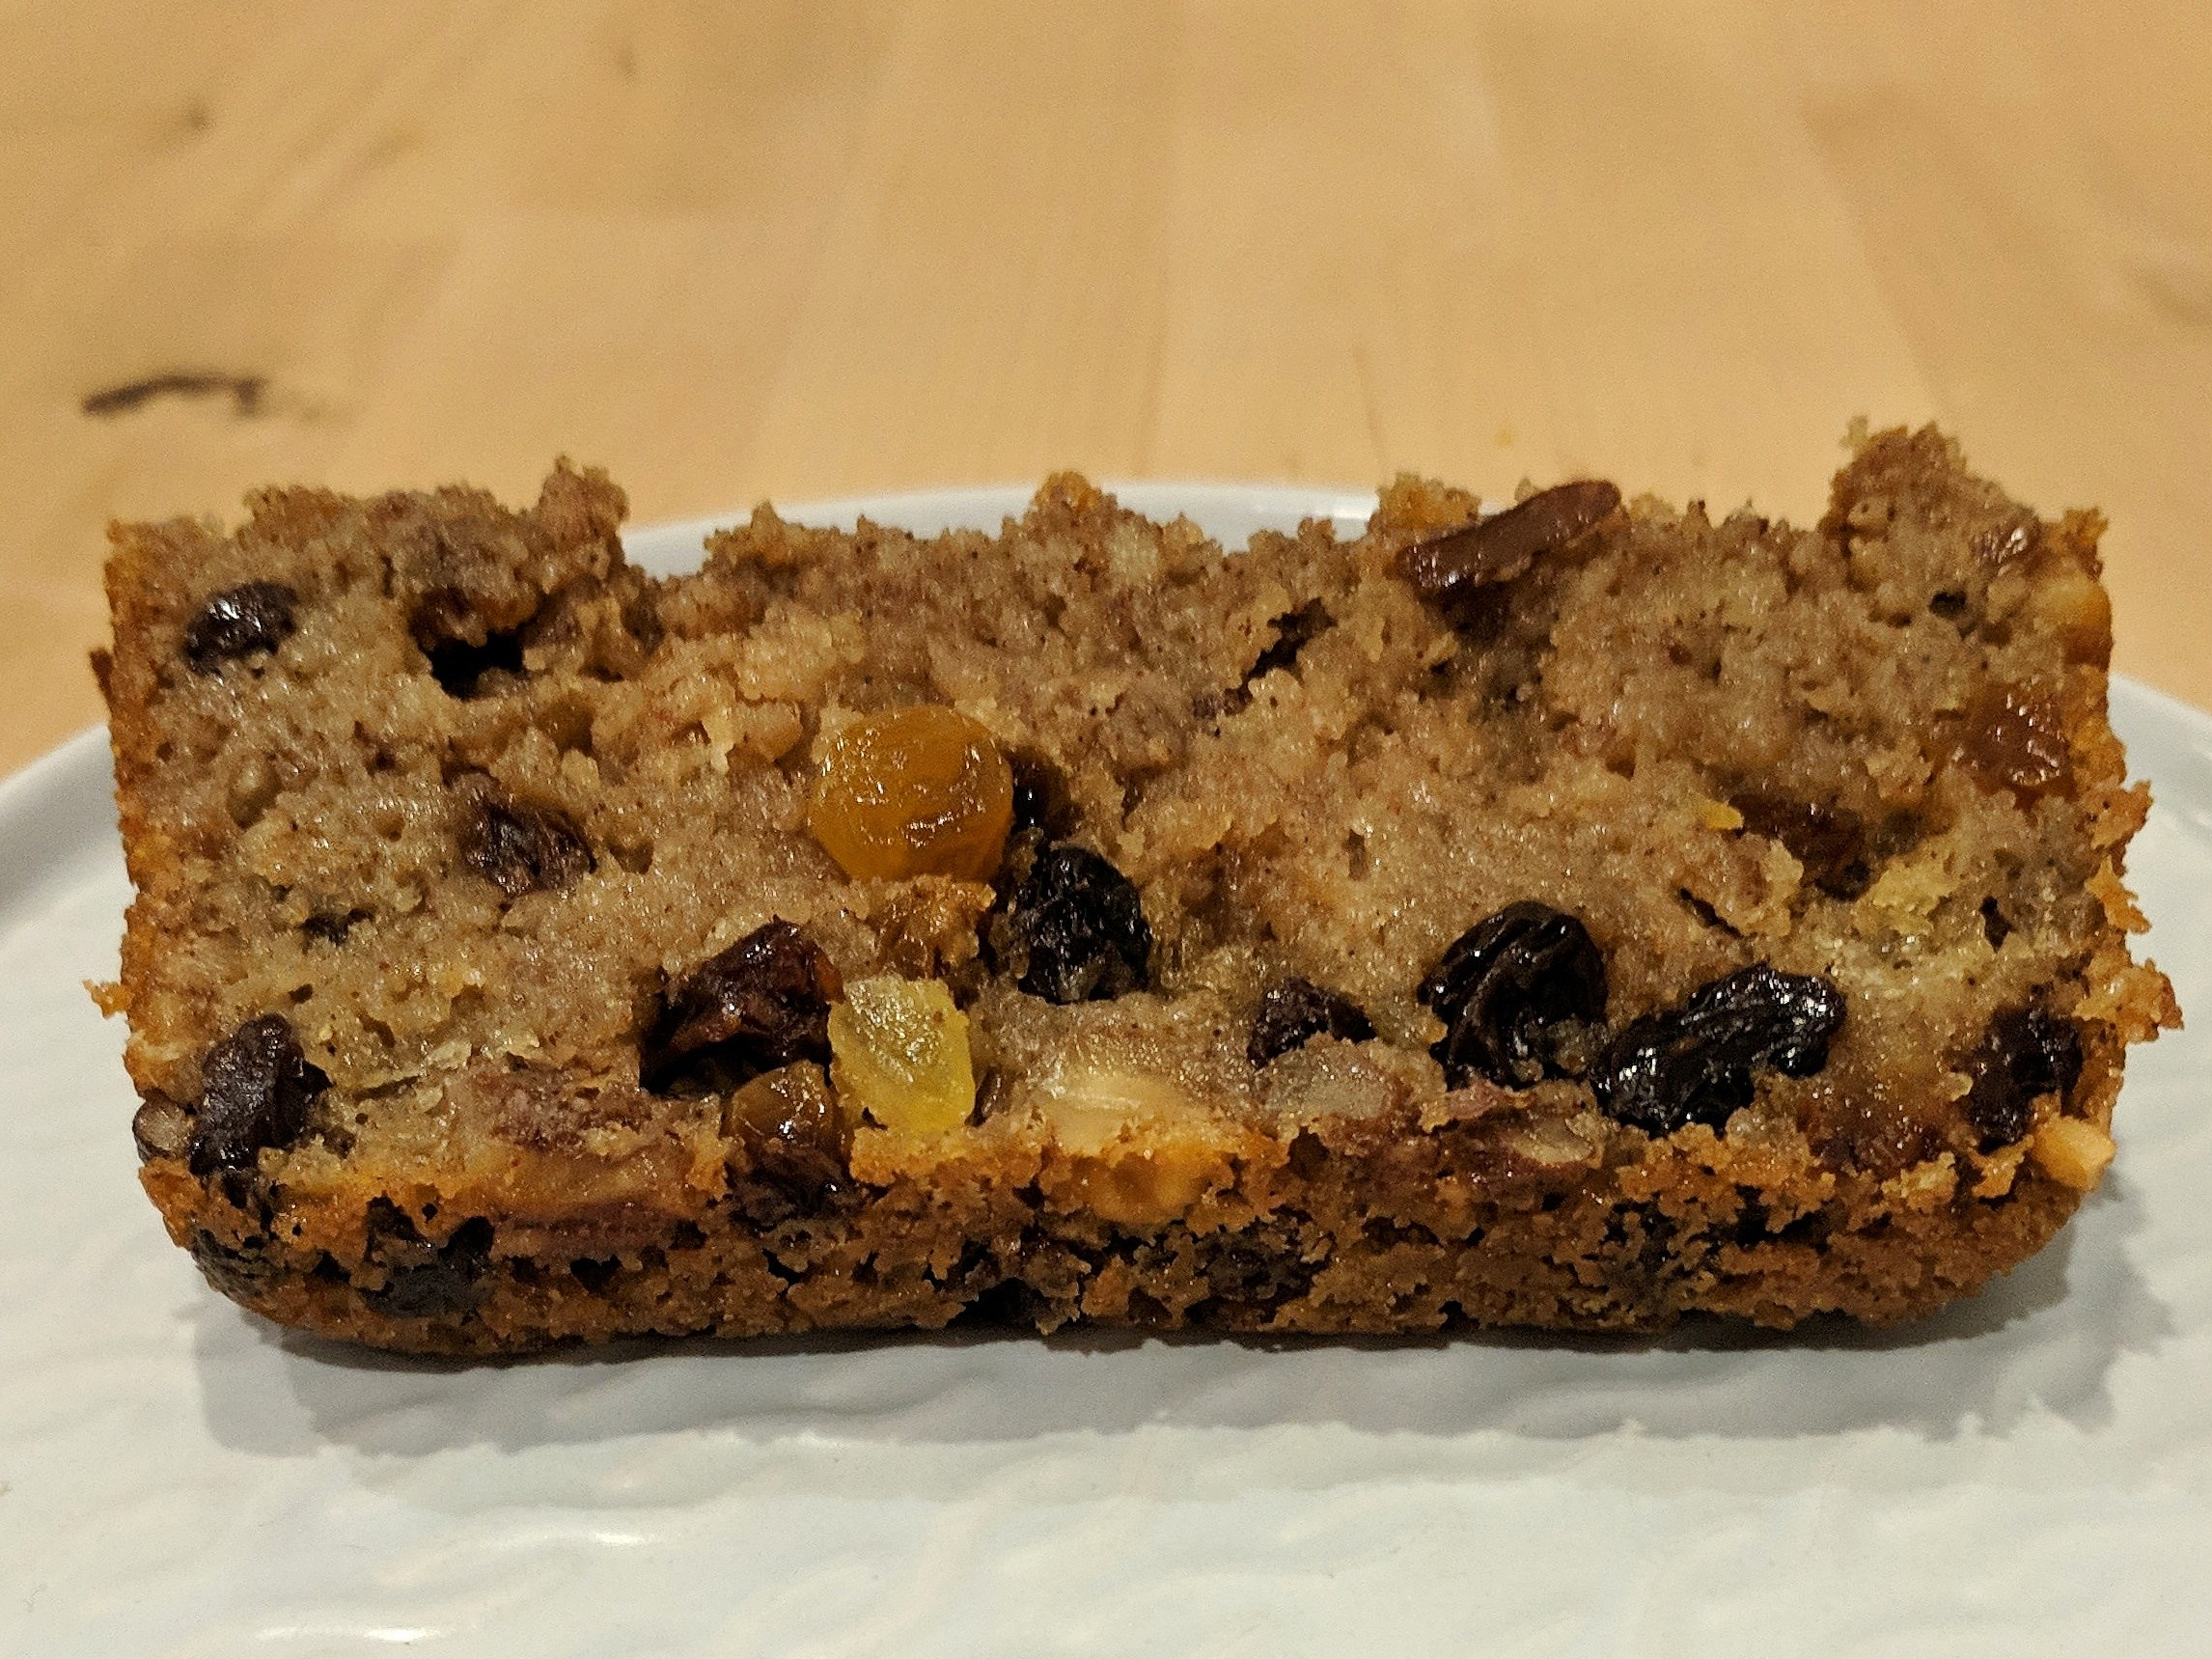 Slice of rather squishy cake, with raisins